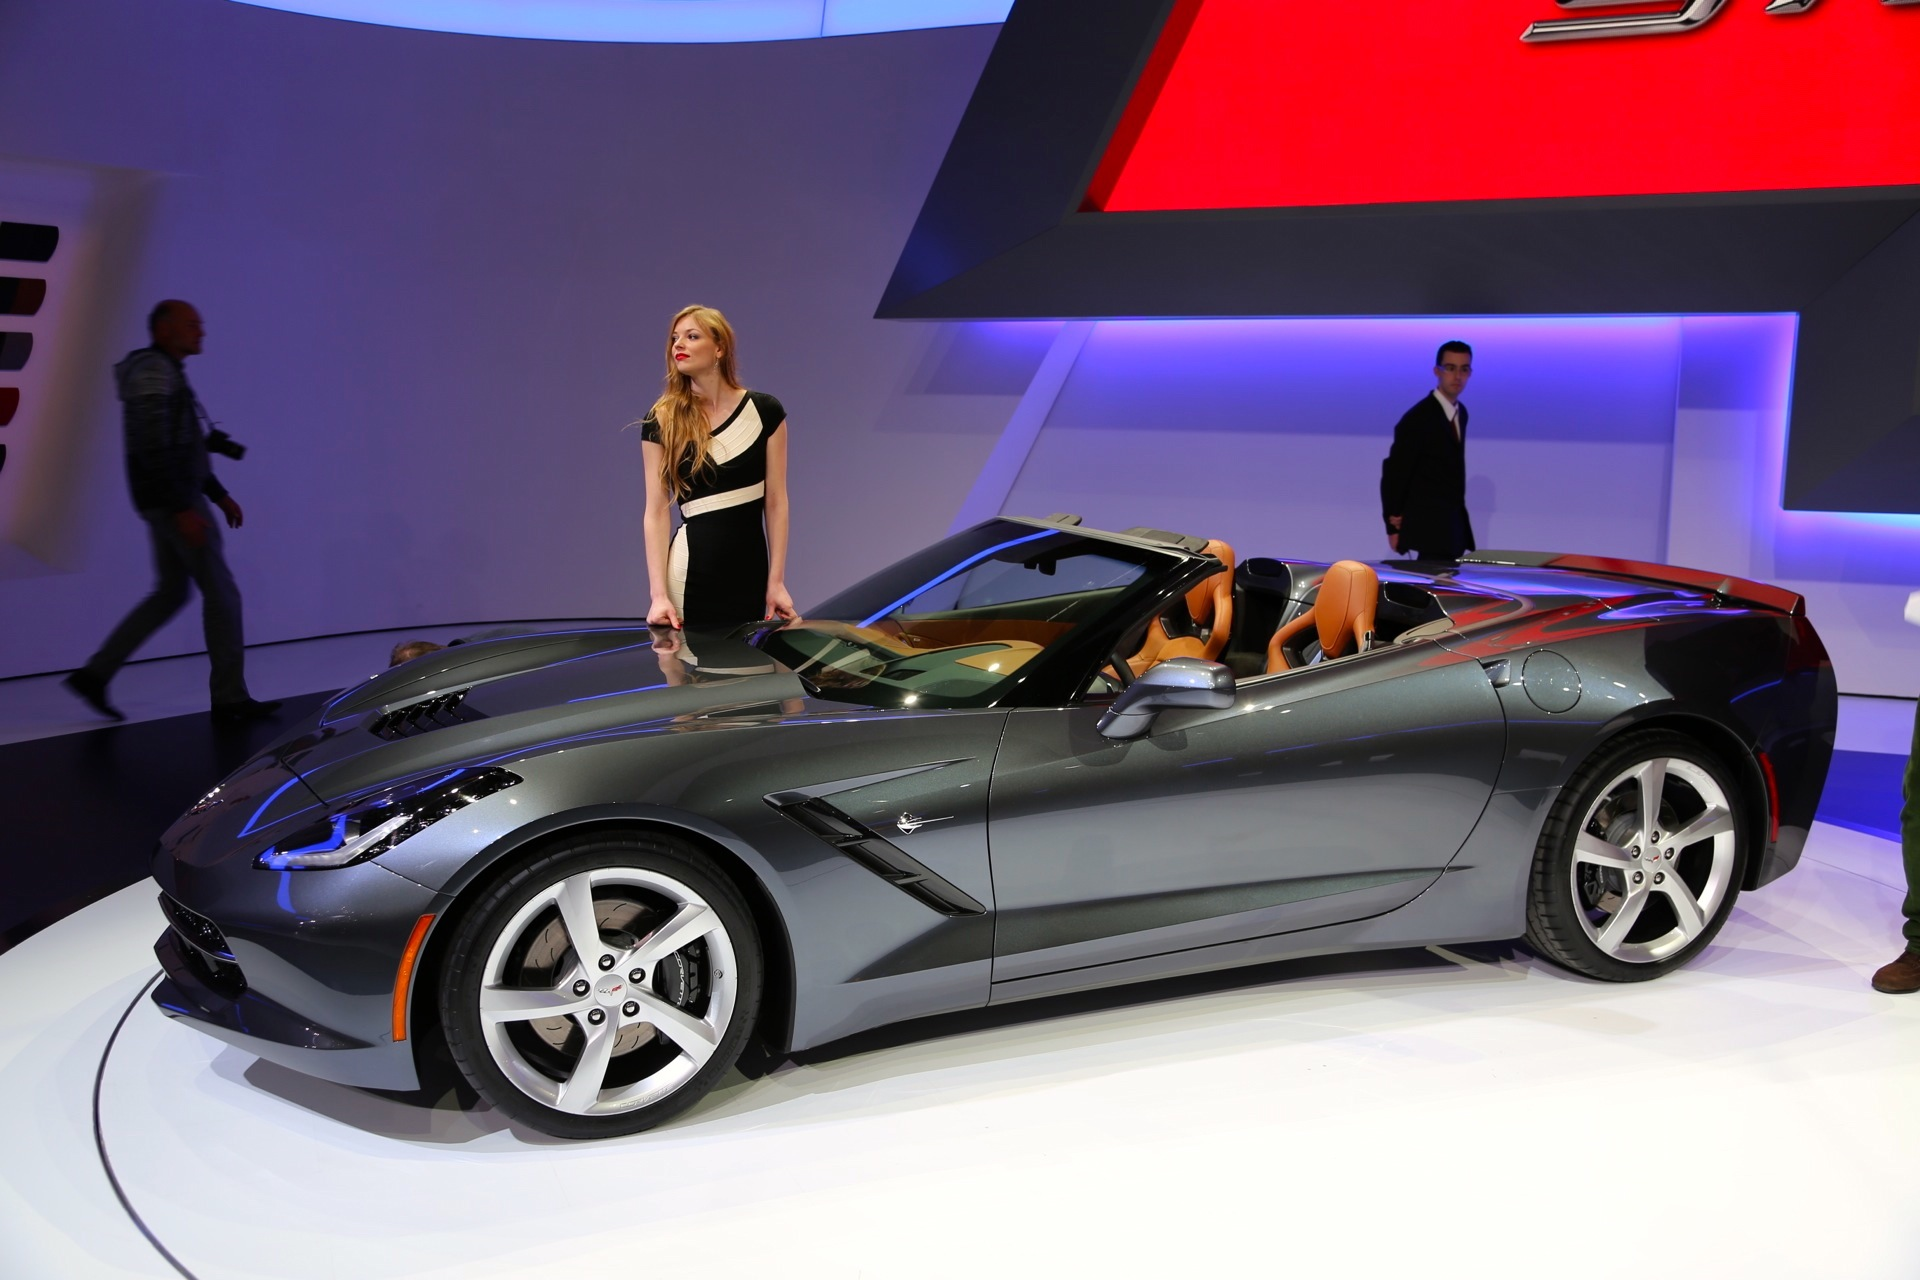 Charming 2014 Chevrolet Corvette Stingray Convertible Live Photos U0026 Video From  Geneva Debut